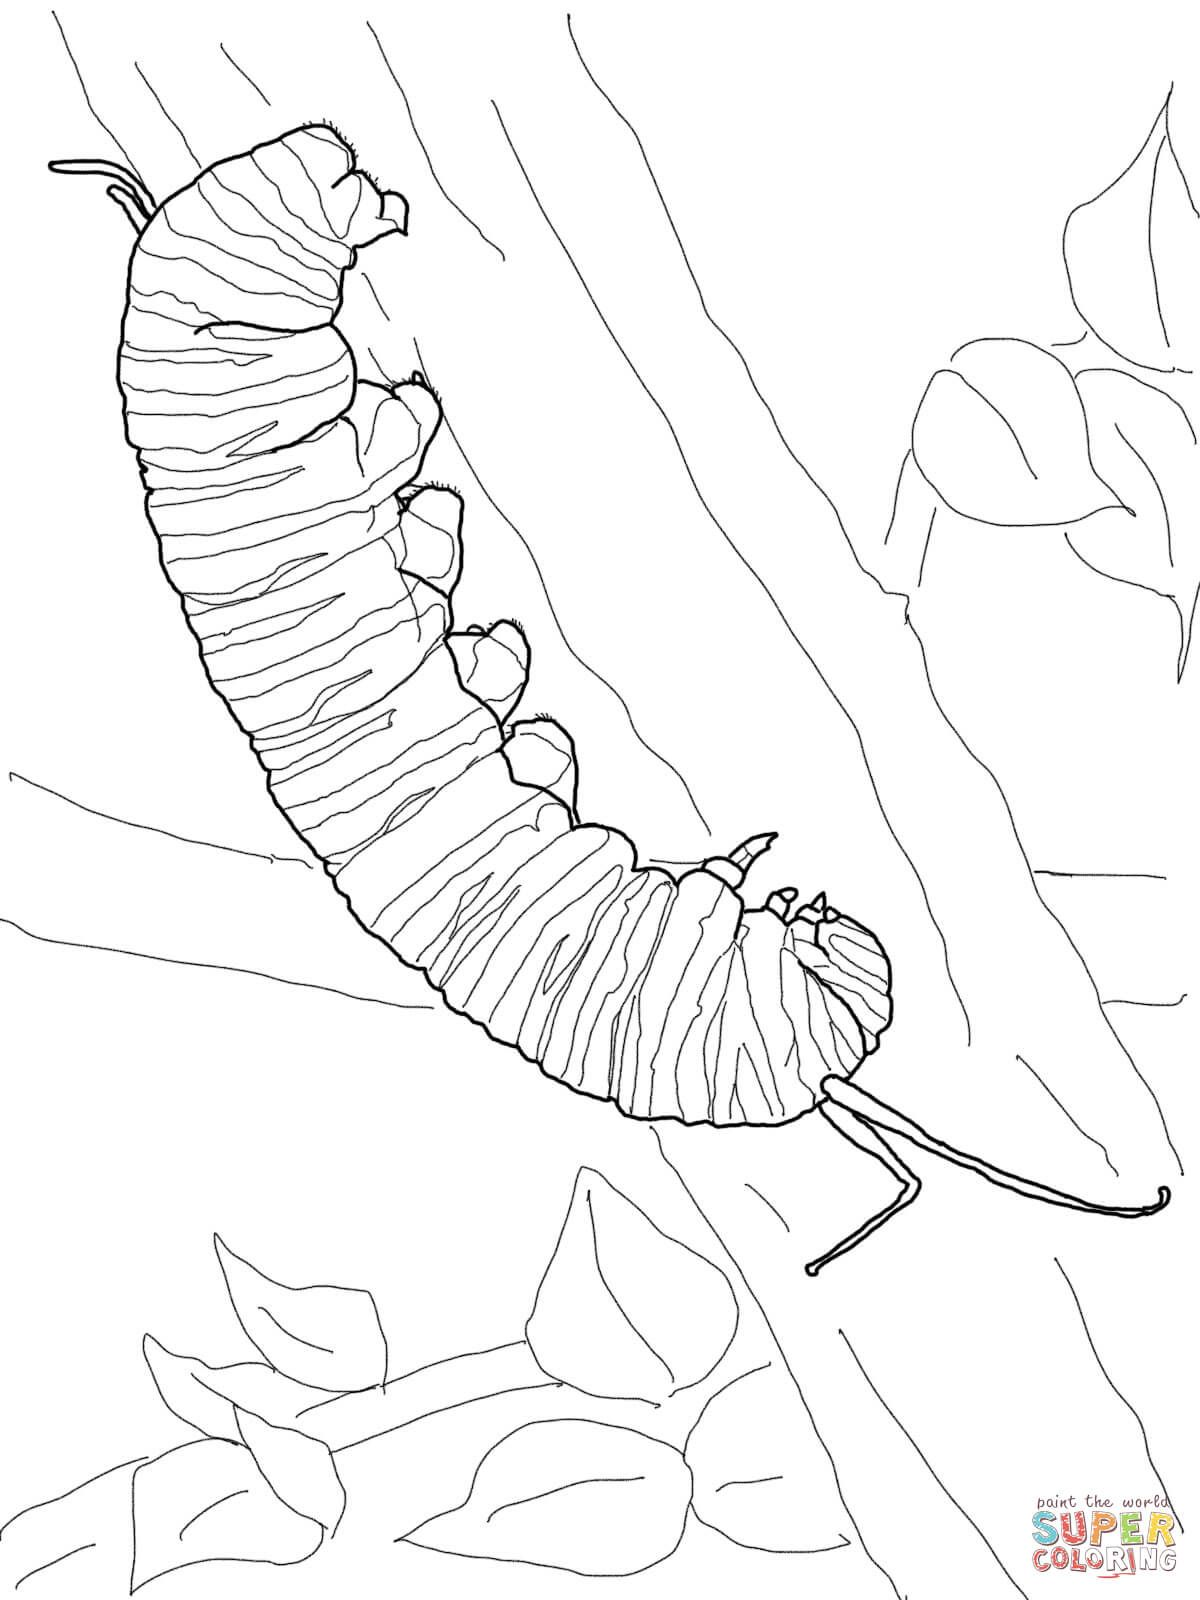 Monarch Caterpillar Coloring Page Free Printable Coloring Pages